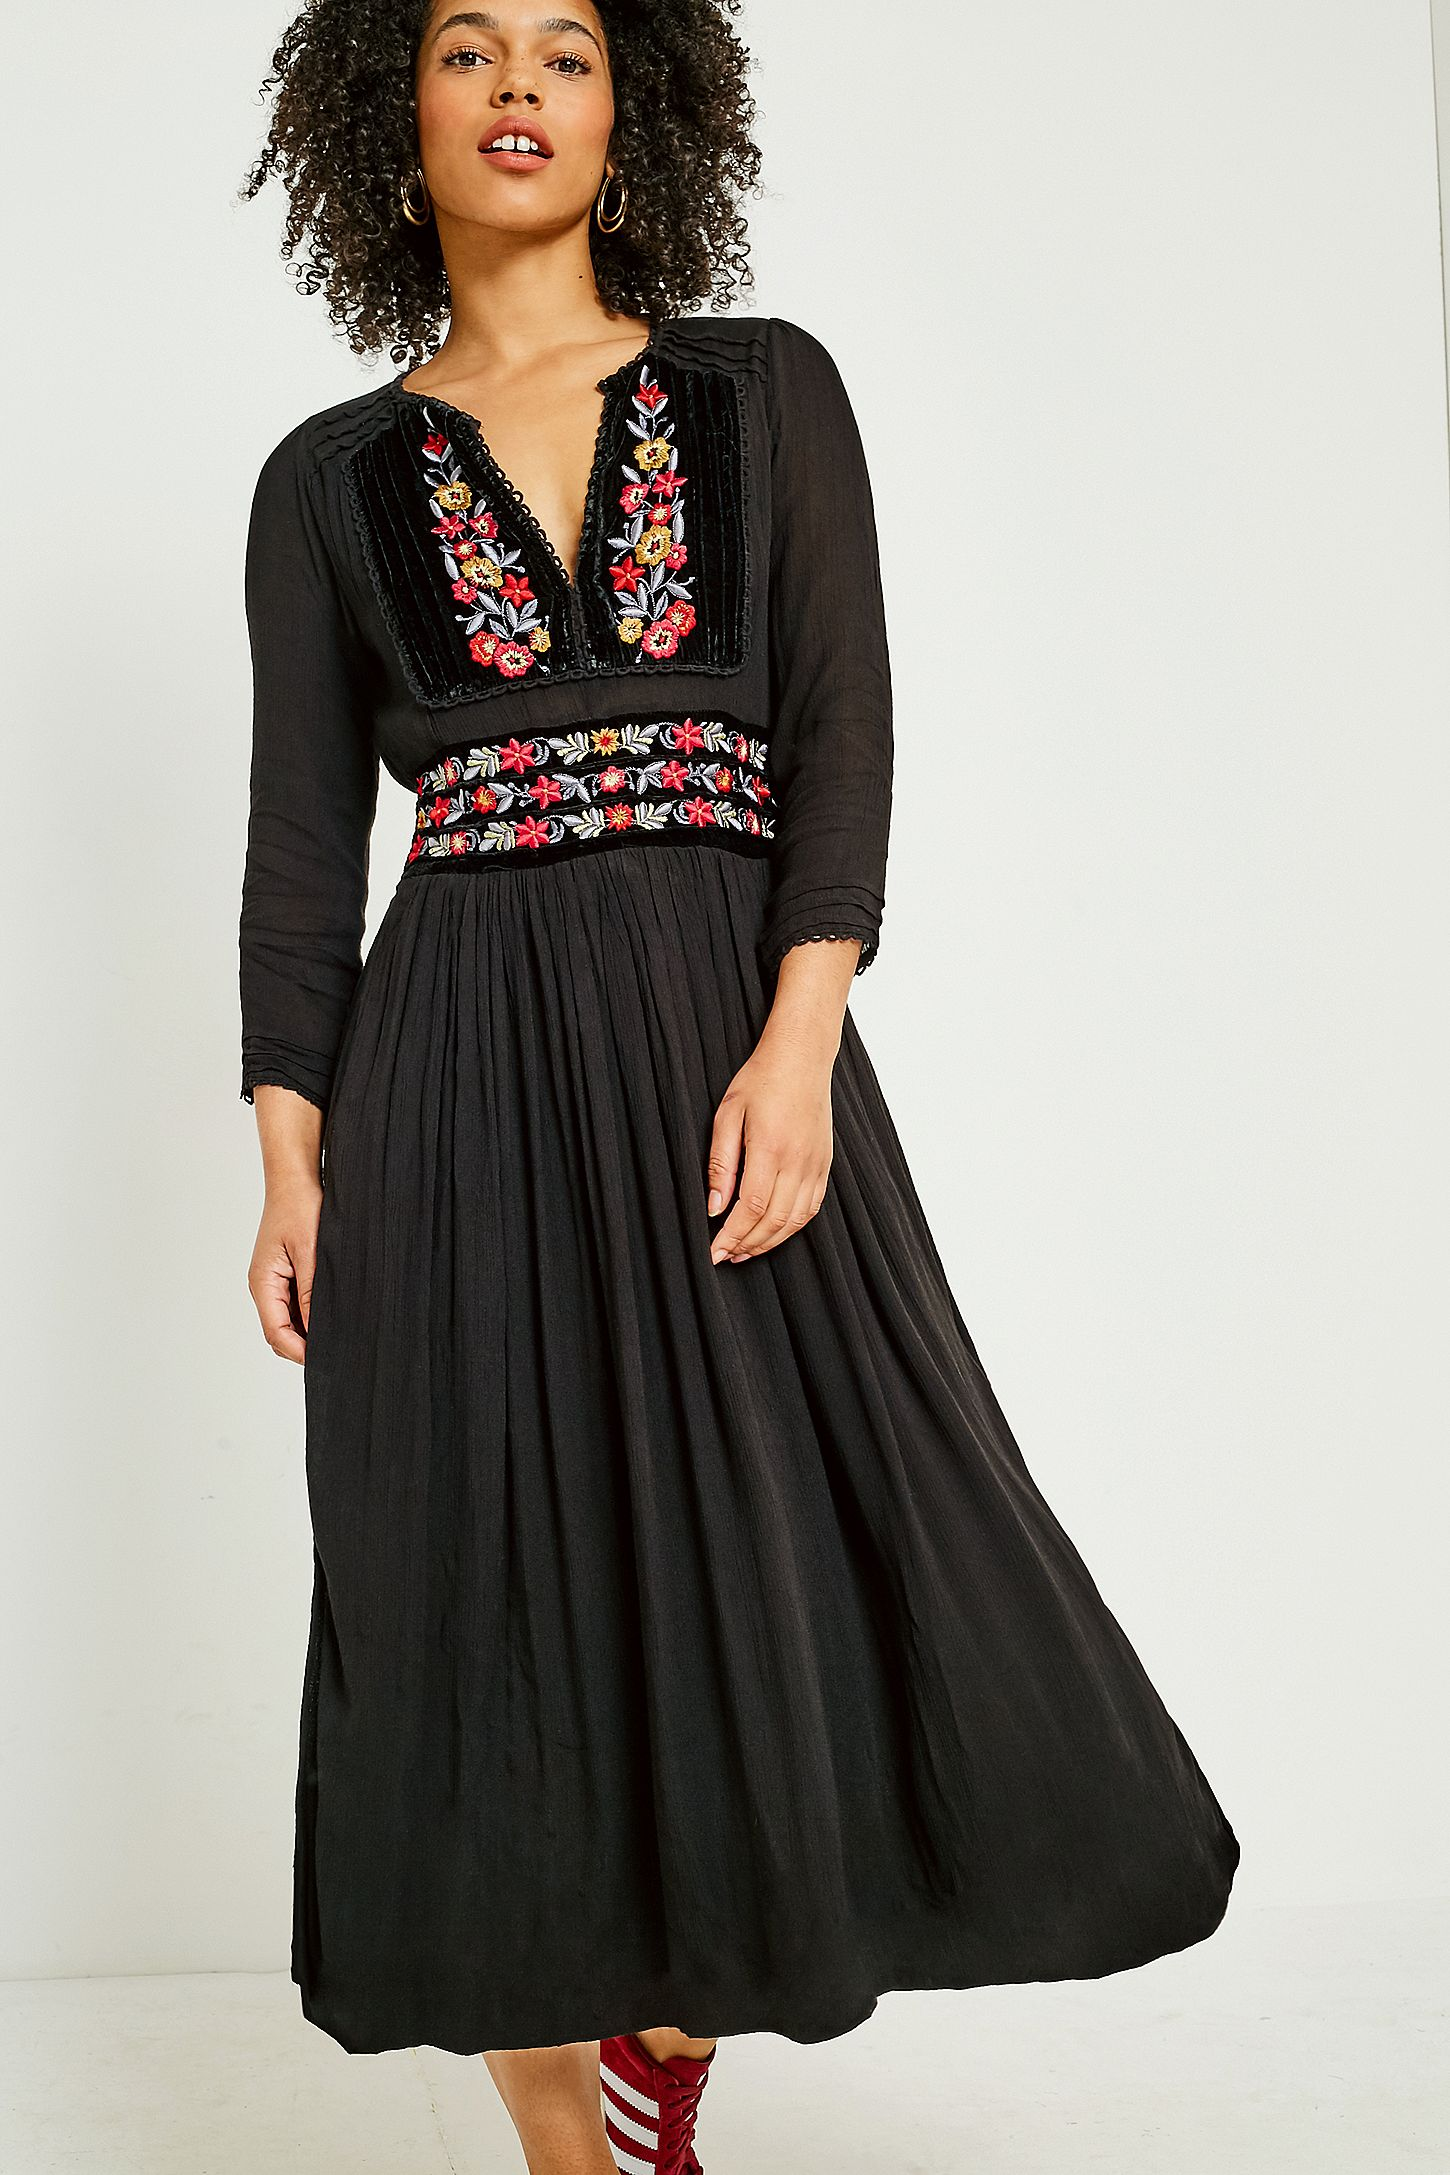 939ce25e2671a Free People Flora Embroidered Floral Midi Dress   Urban Outfitters FR